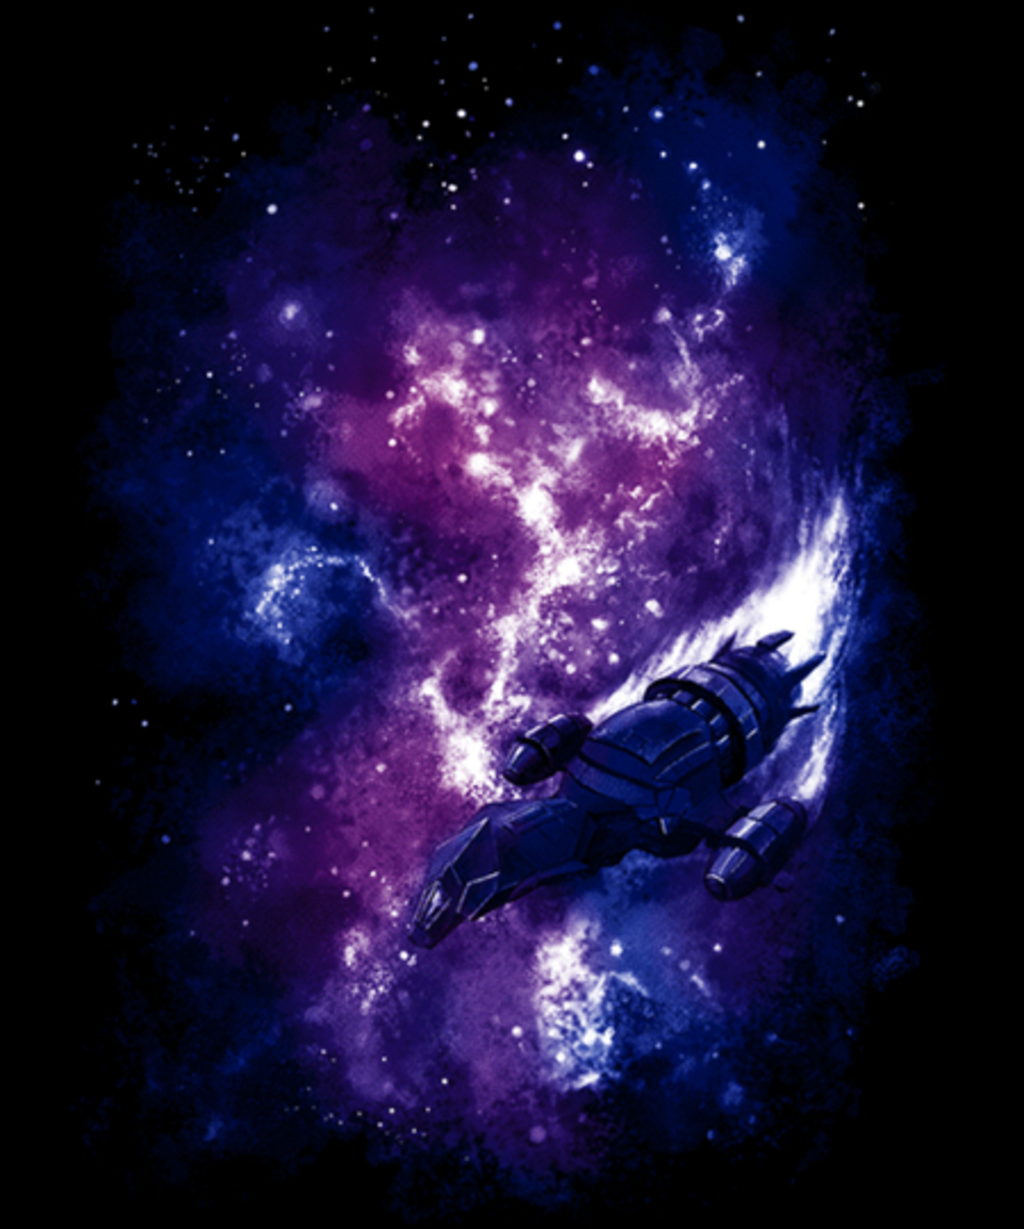 Qwertee: You Can't Take The Sky From Me